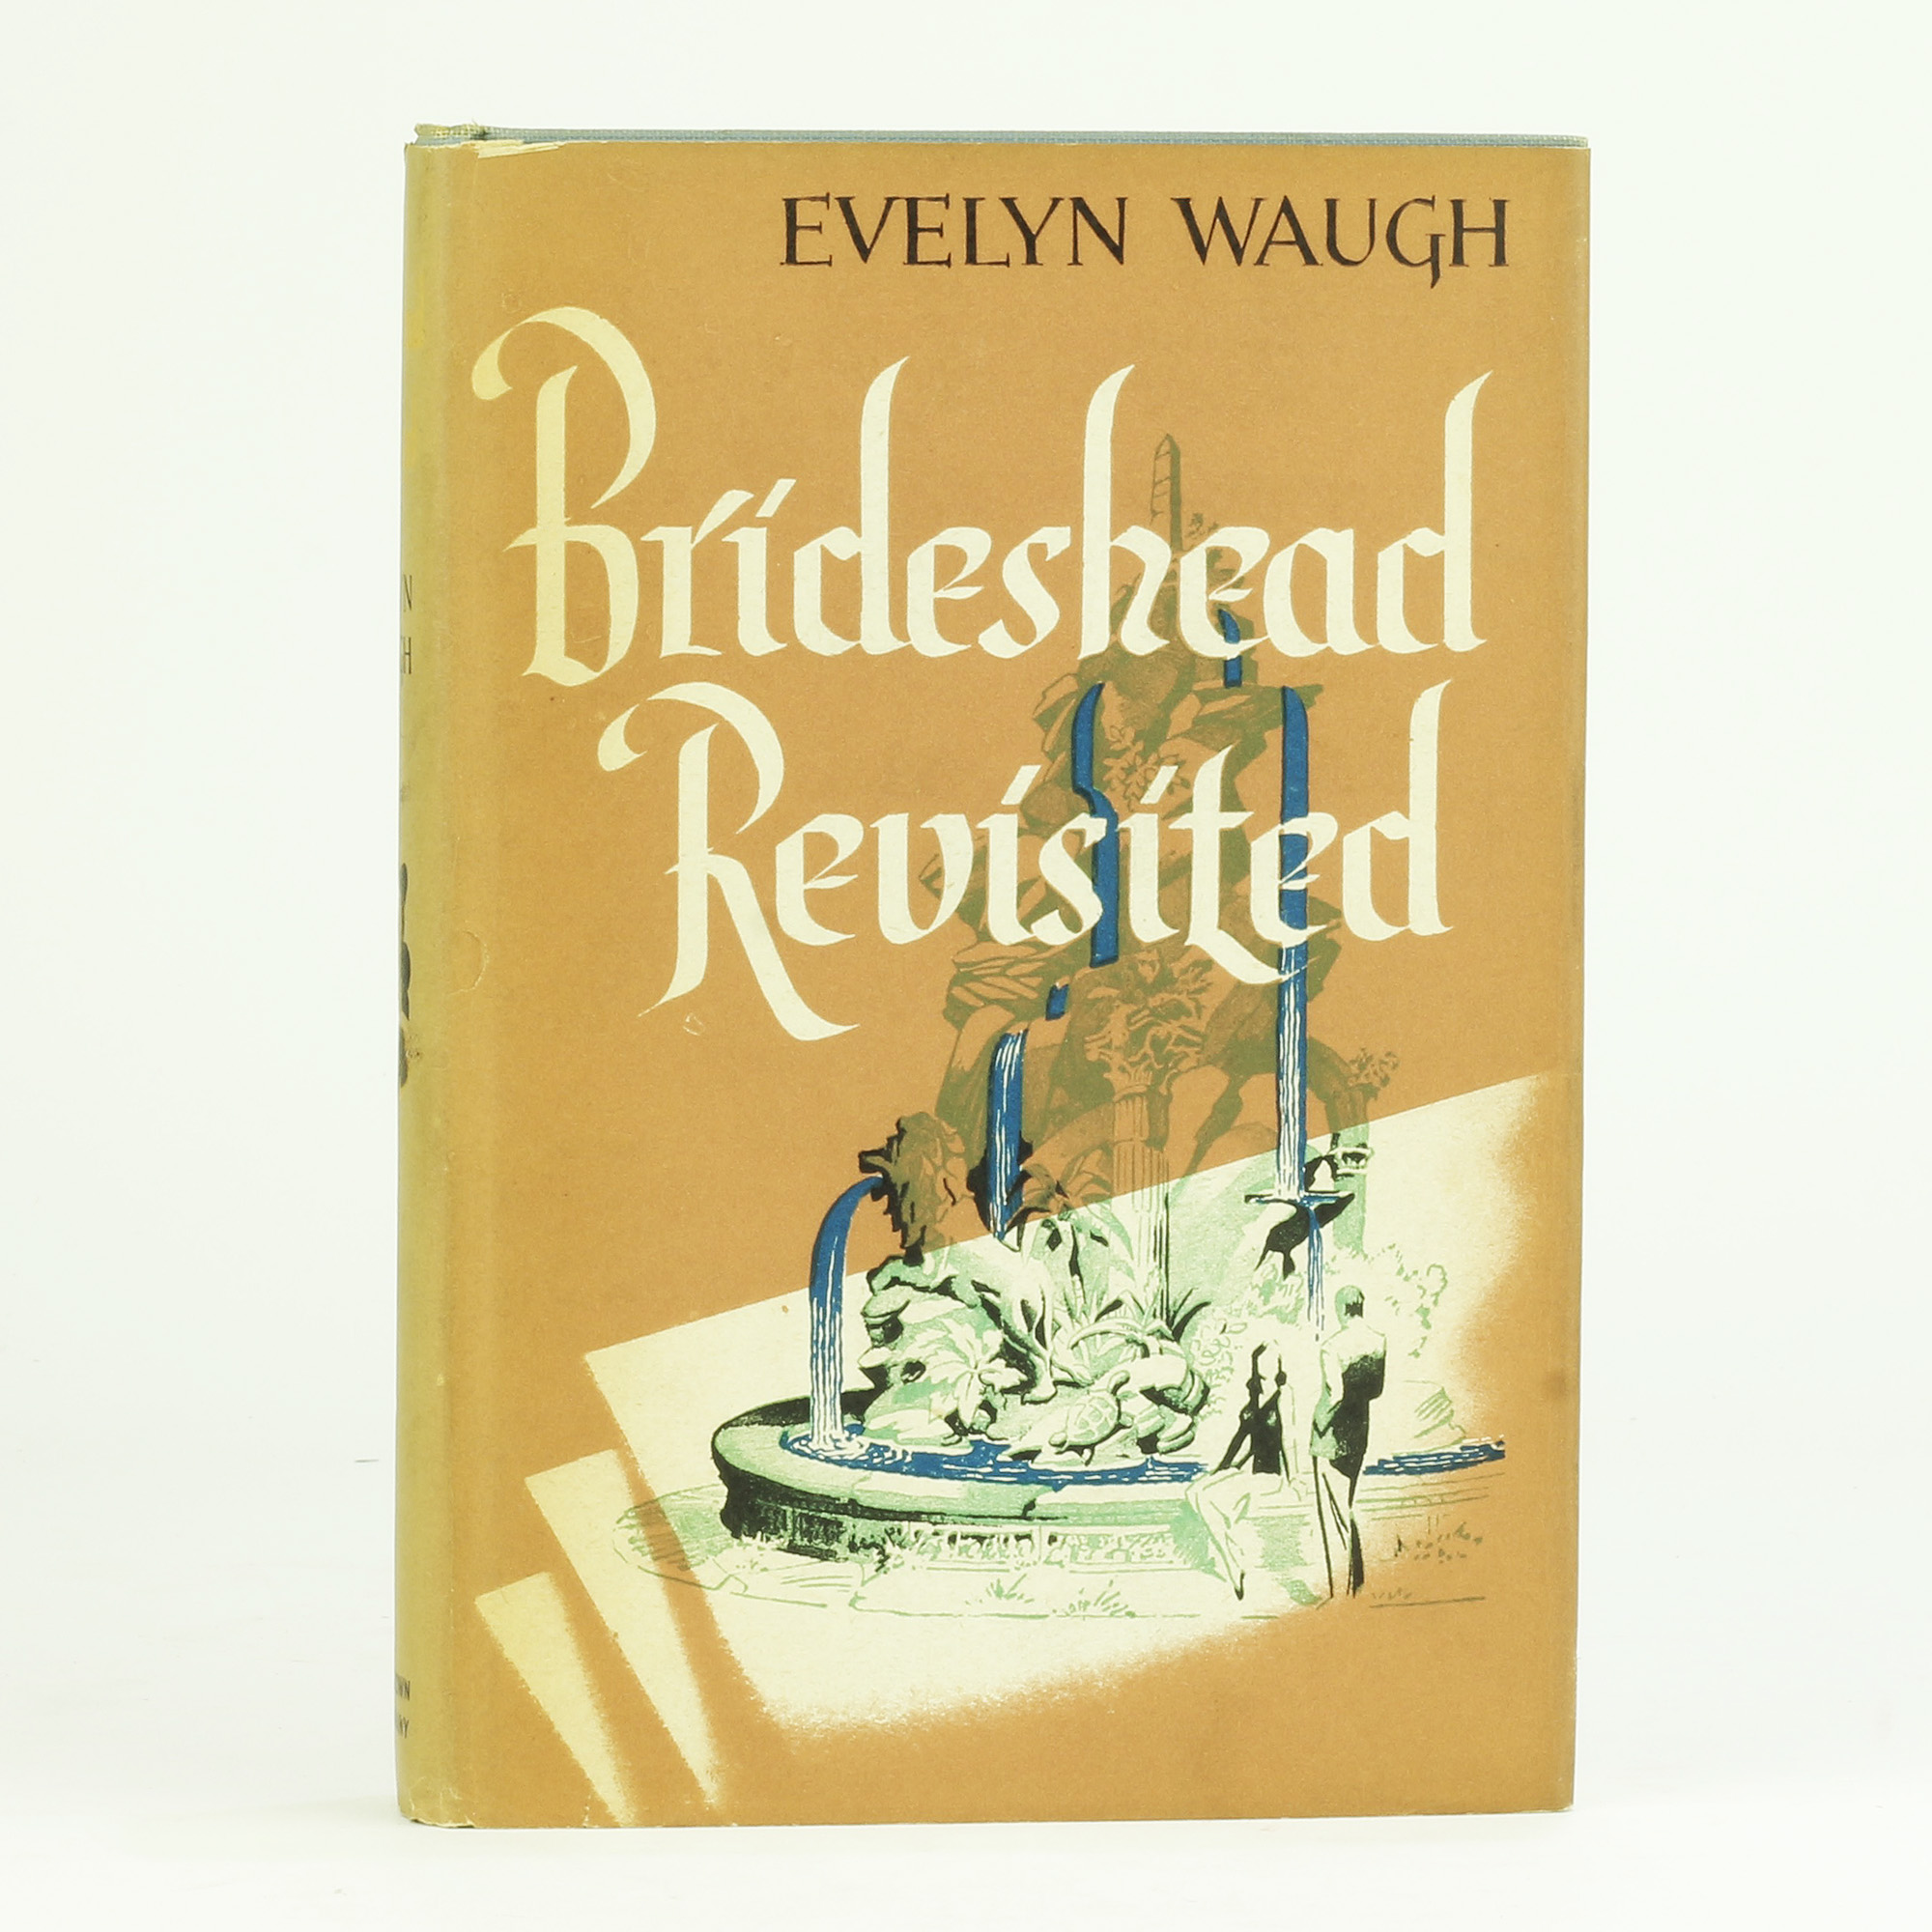 evelyn waugh brideshead revisited pdf